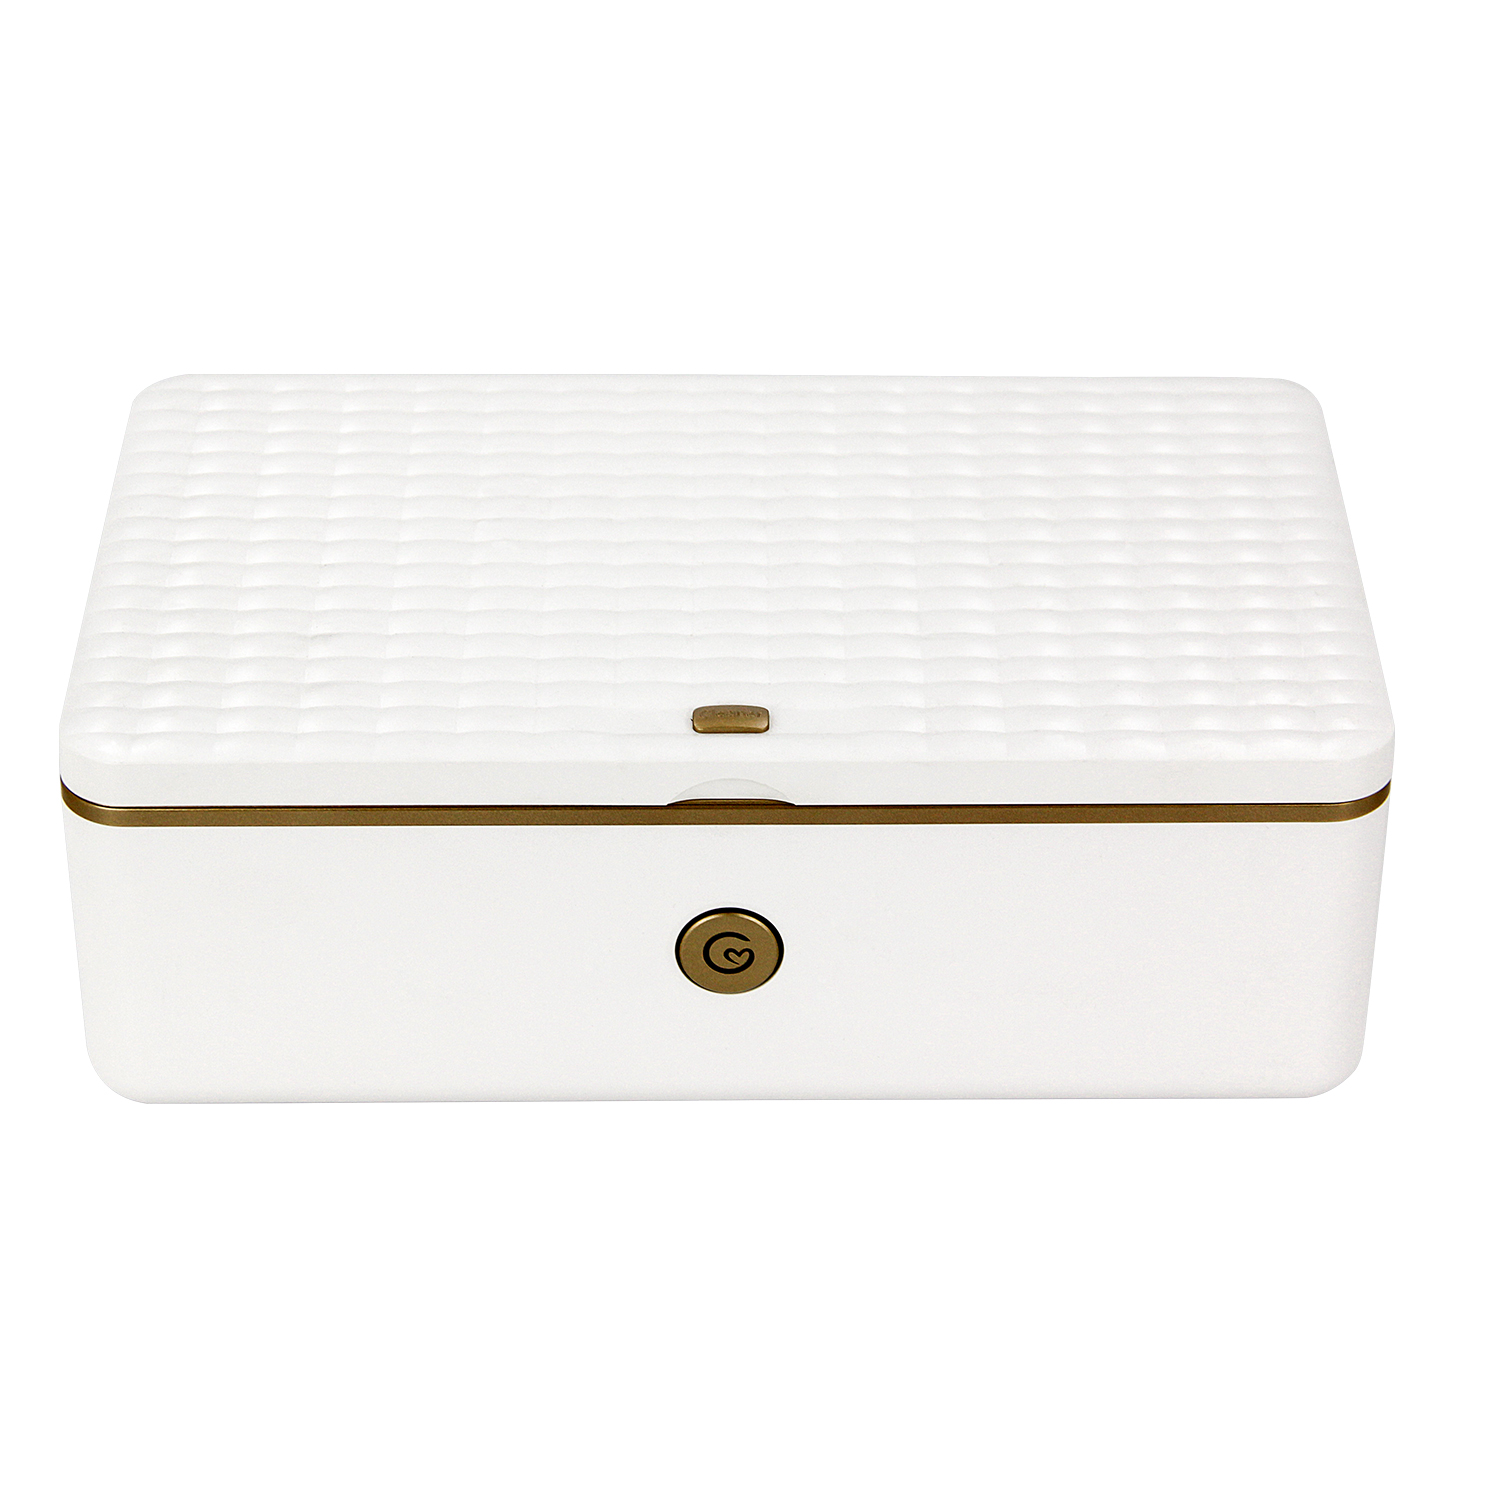 Household small tableware portable UV disinfection box